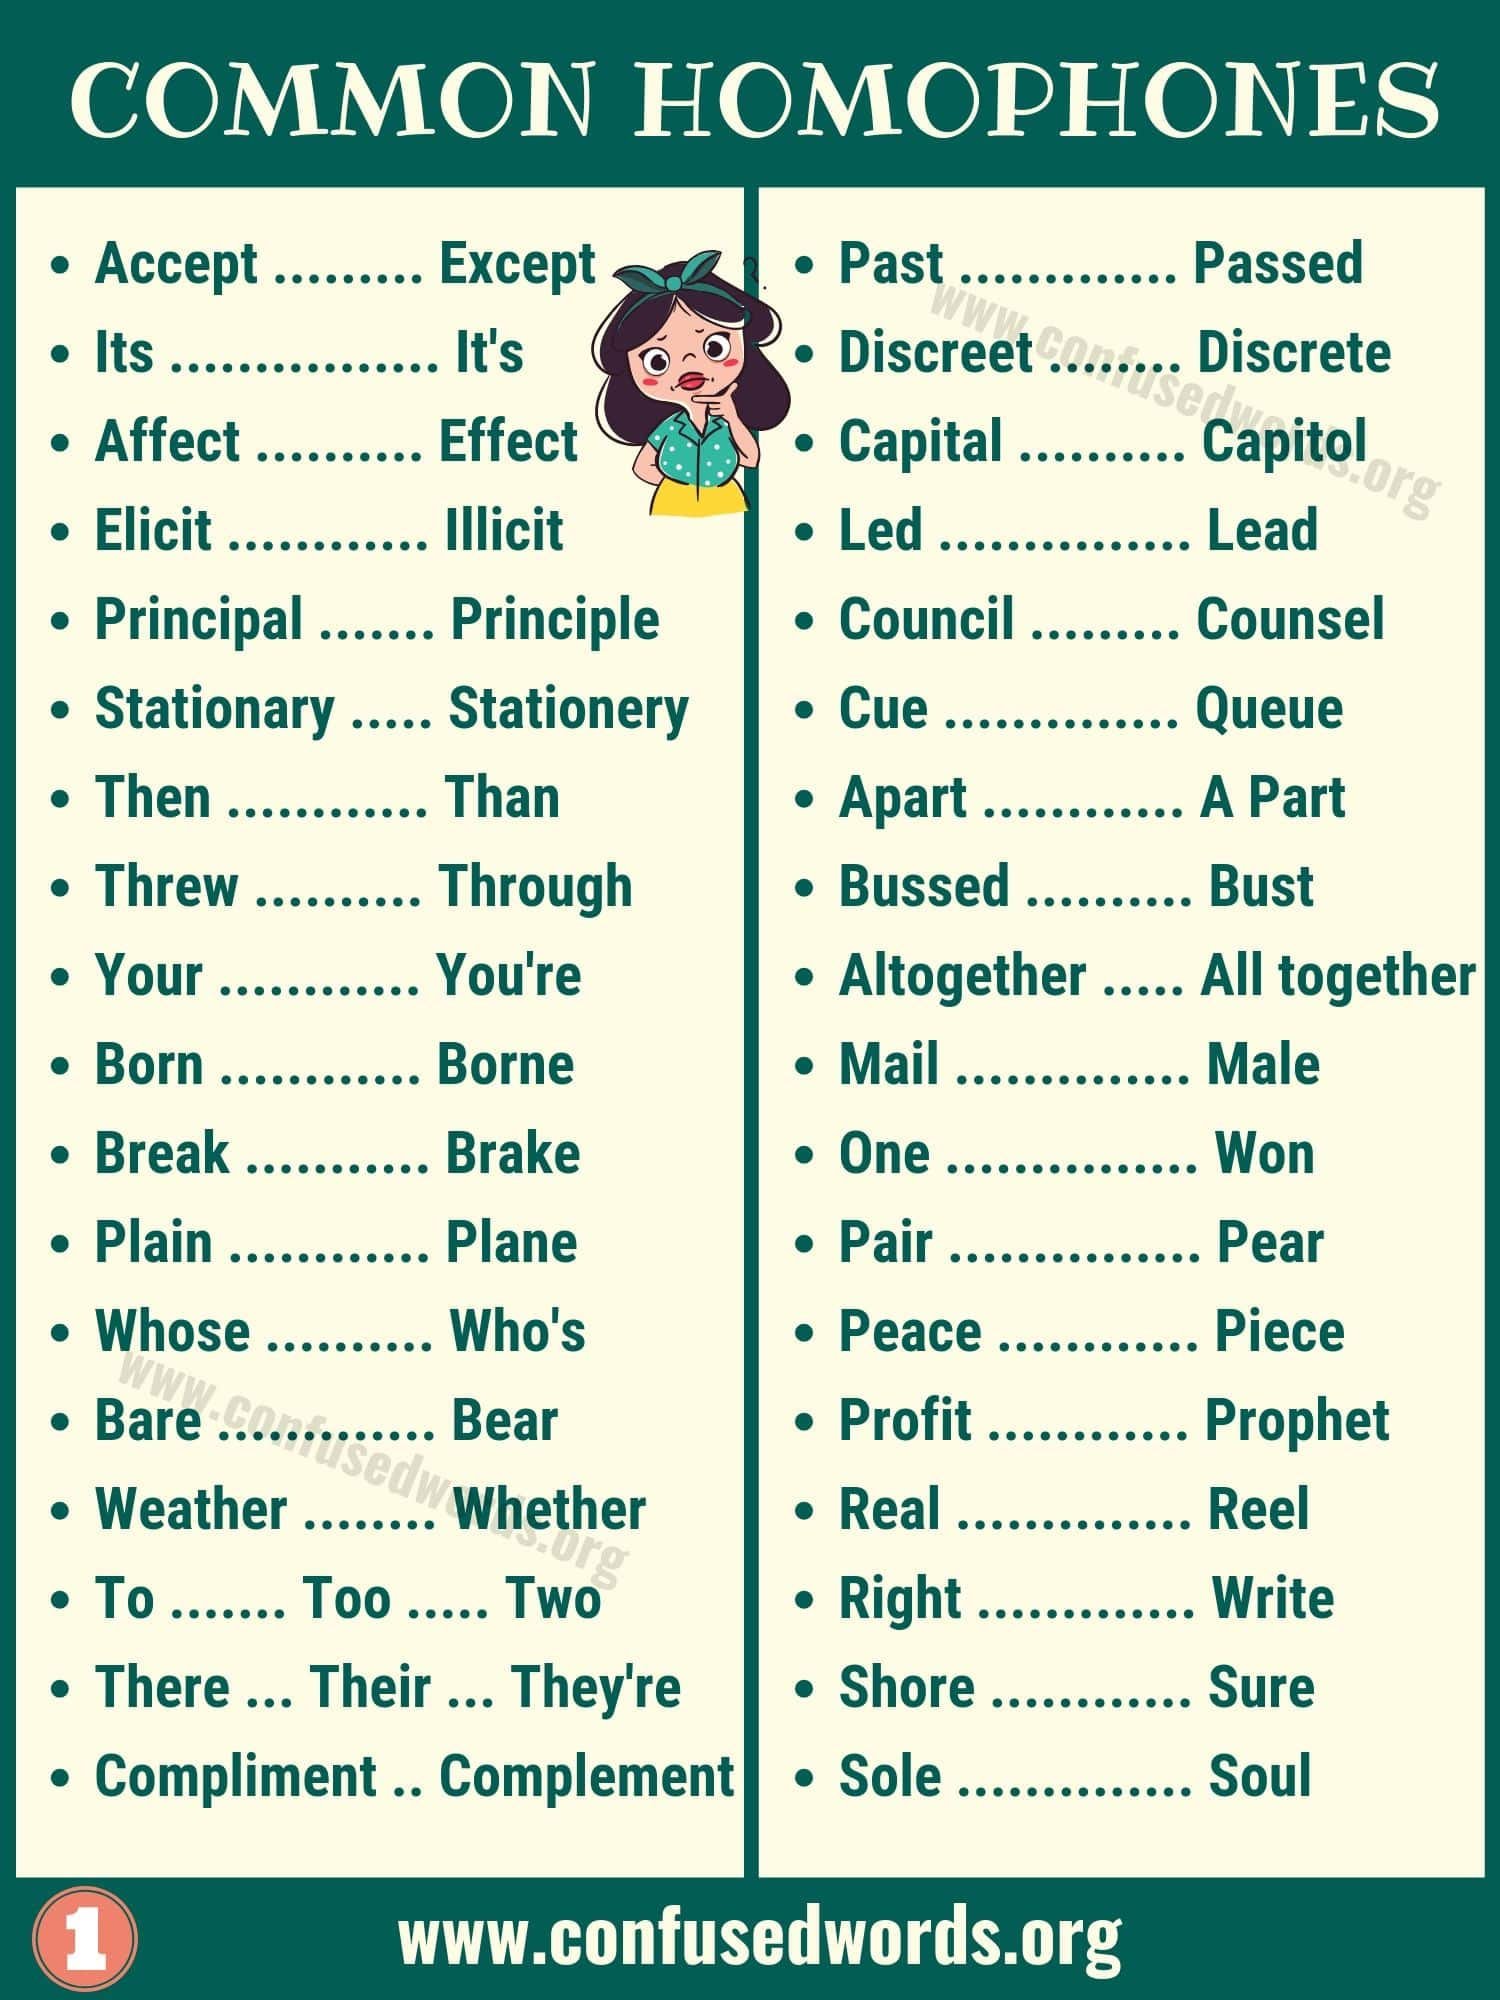 Homophones List in English